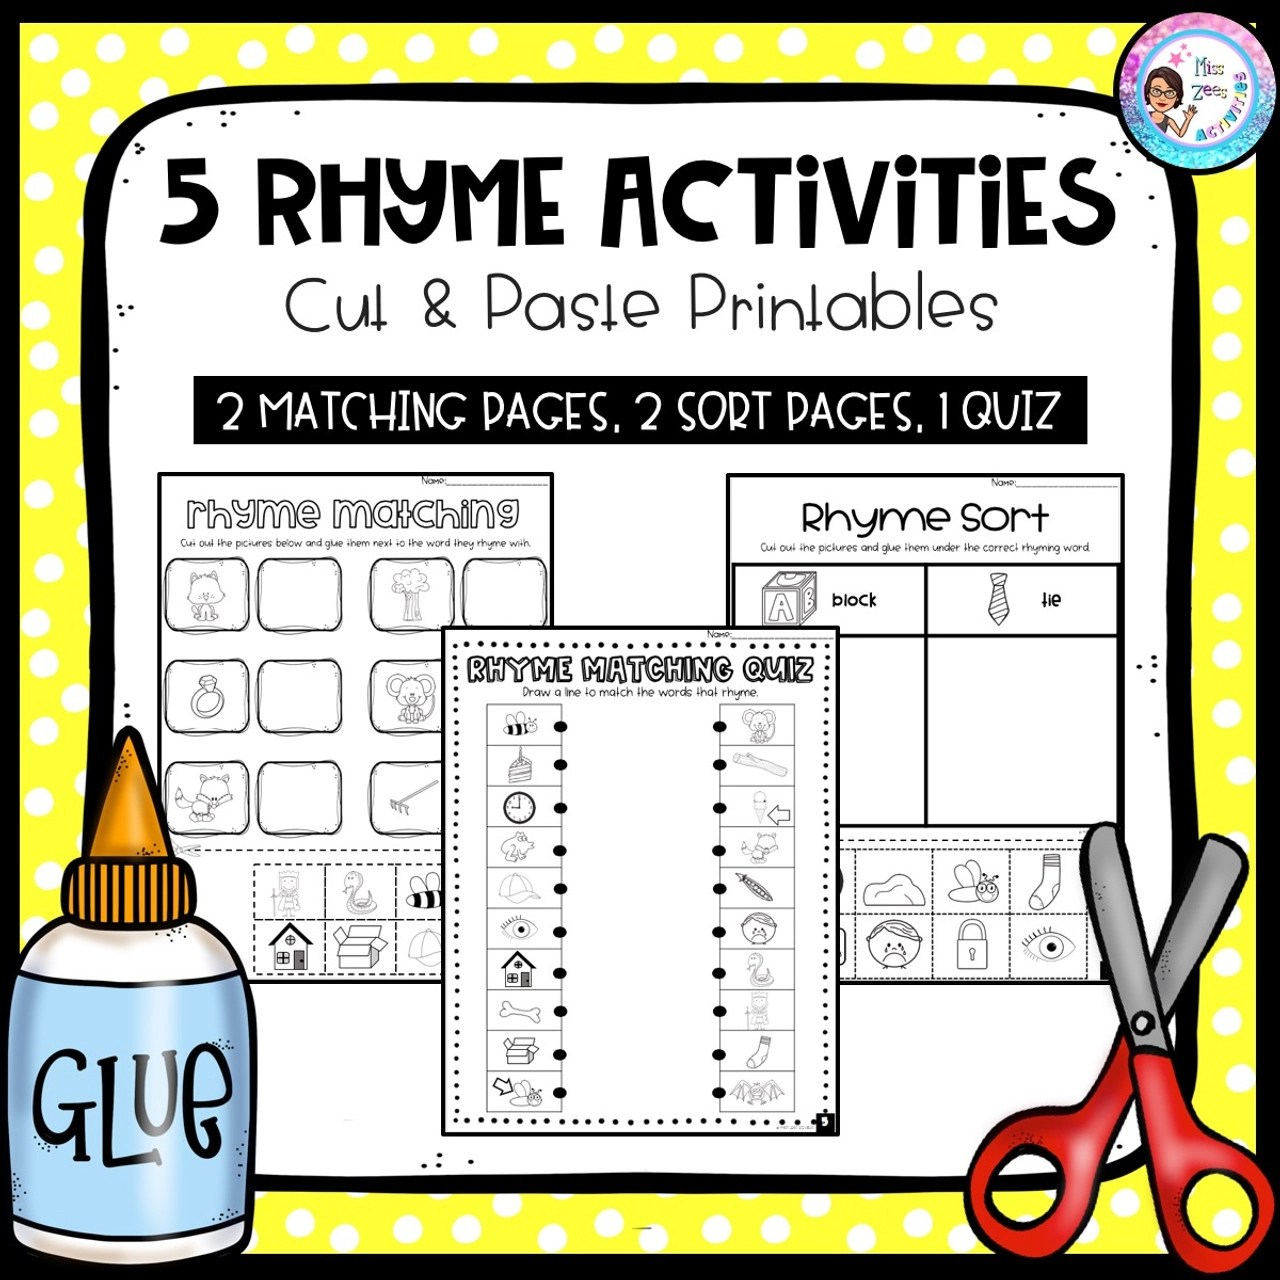 hight resolution of 5 Rhyme Activities: Cut \u0026 Paste Printables - Amped Up Learning